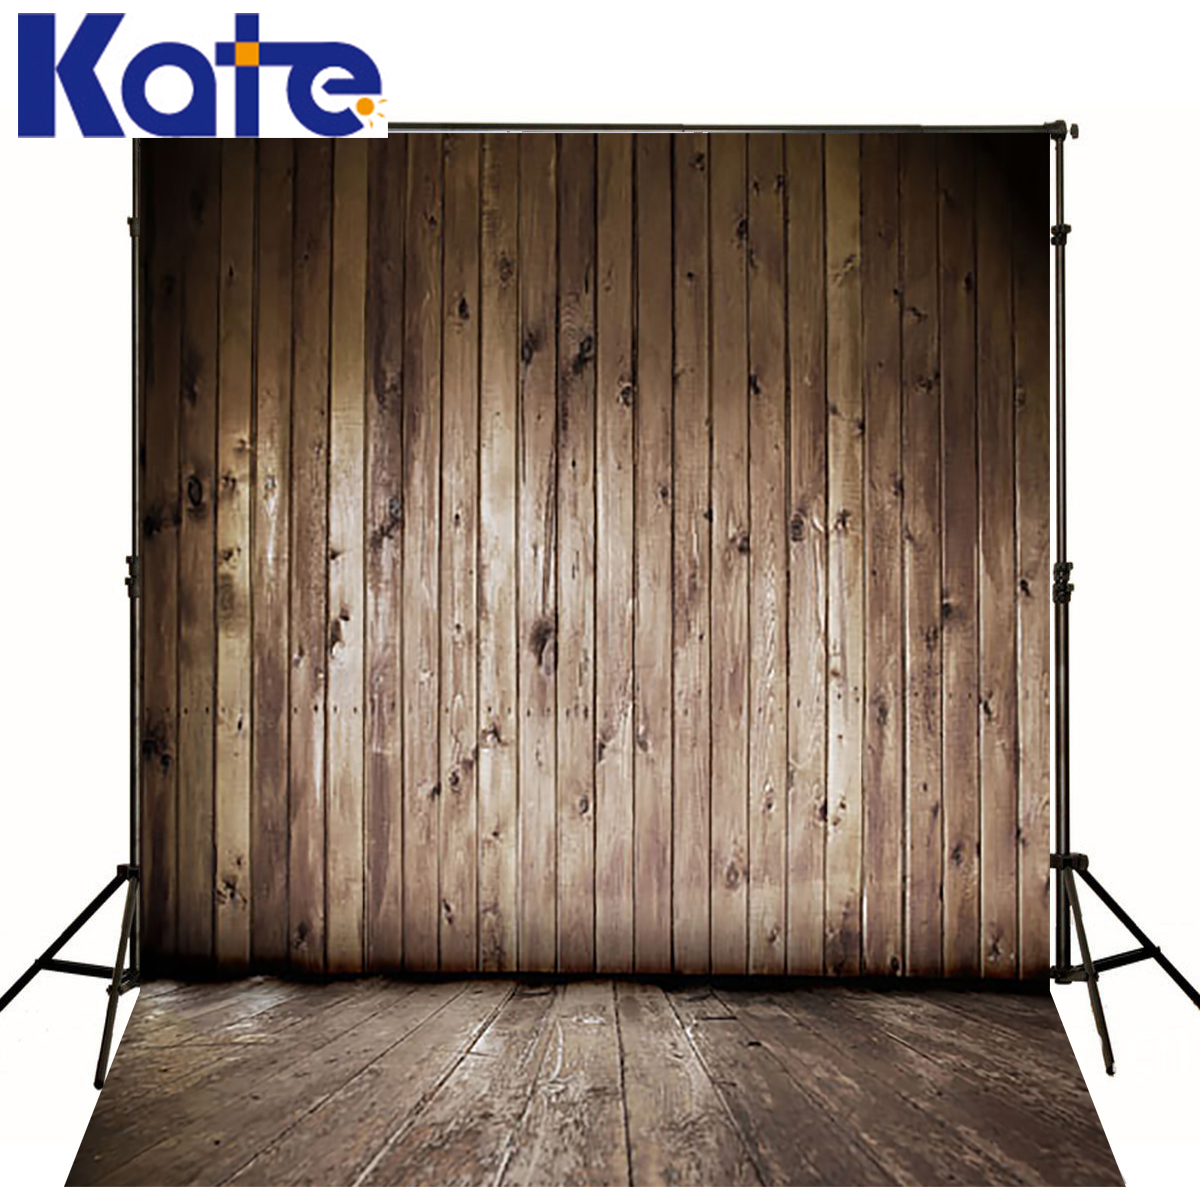 Kate Newborn Baby Backgrounds Fotografia Light Wood Wall Fundo Fotografico Madeira Old Wooden Floor Backdrops For Photo Studio<br>